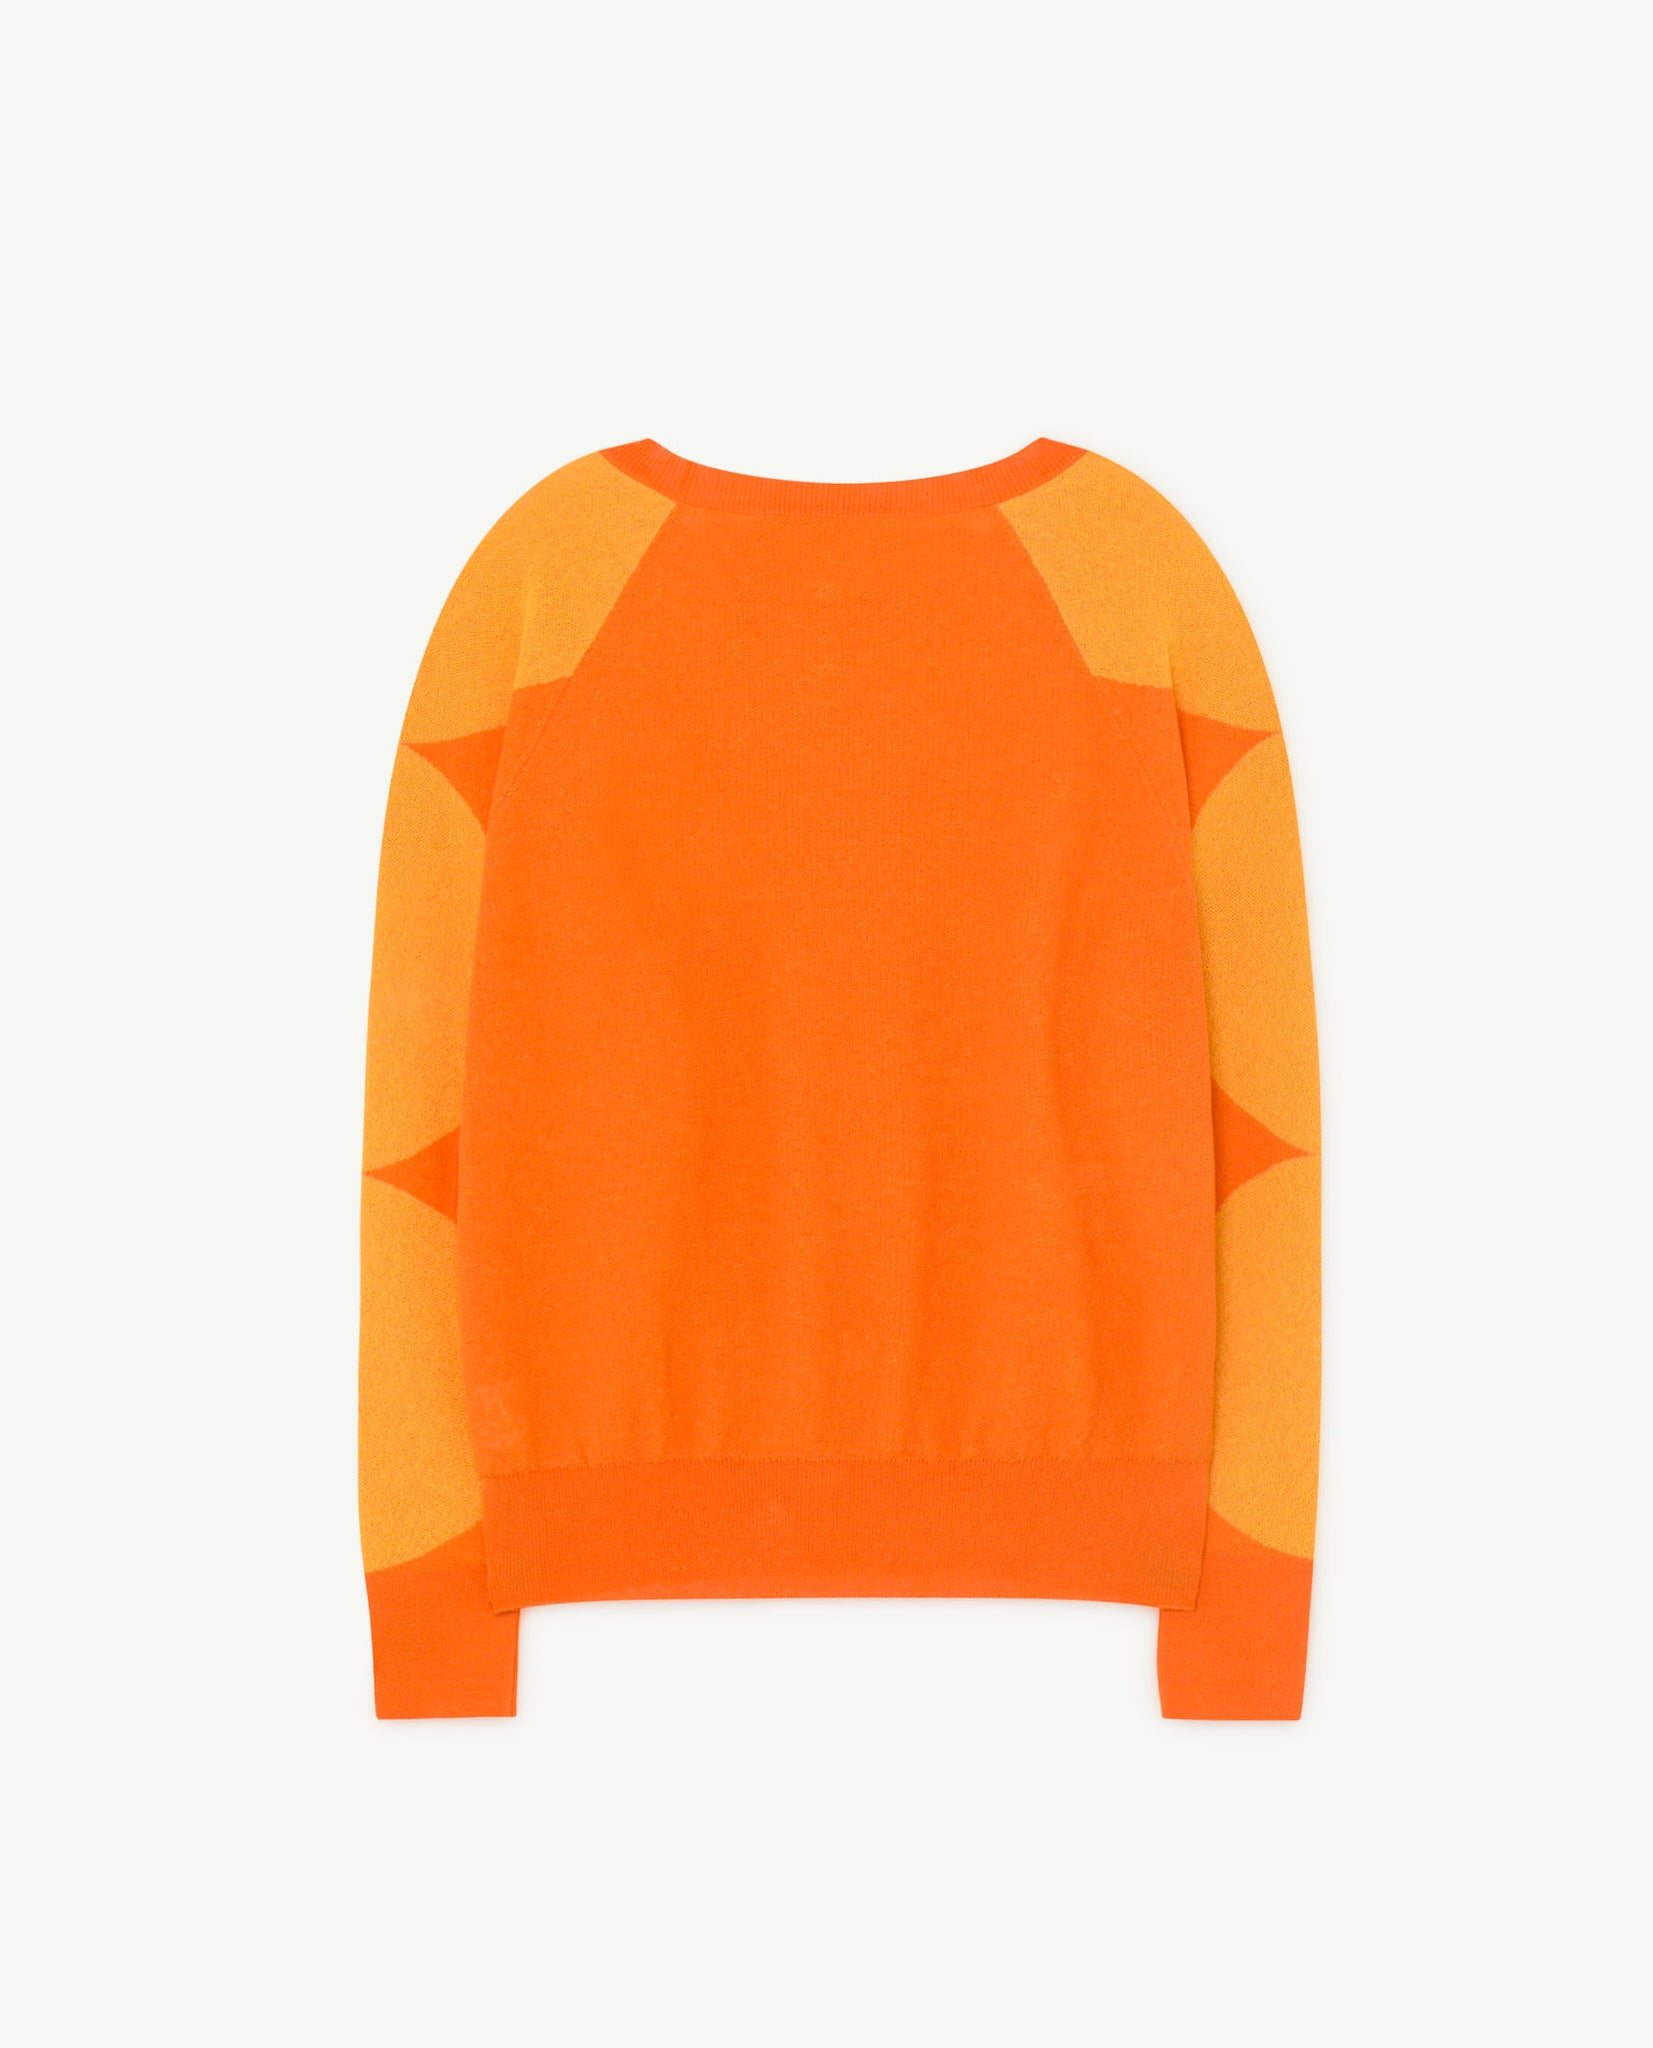 Dots Bull Kids Sweater - Orange Logo